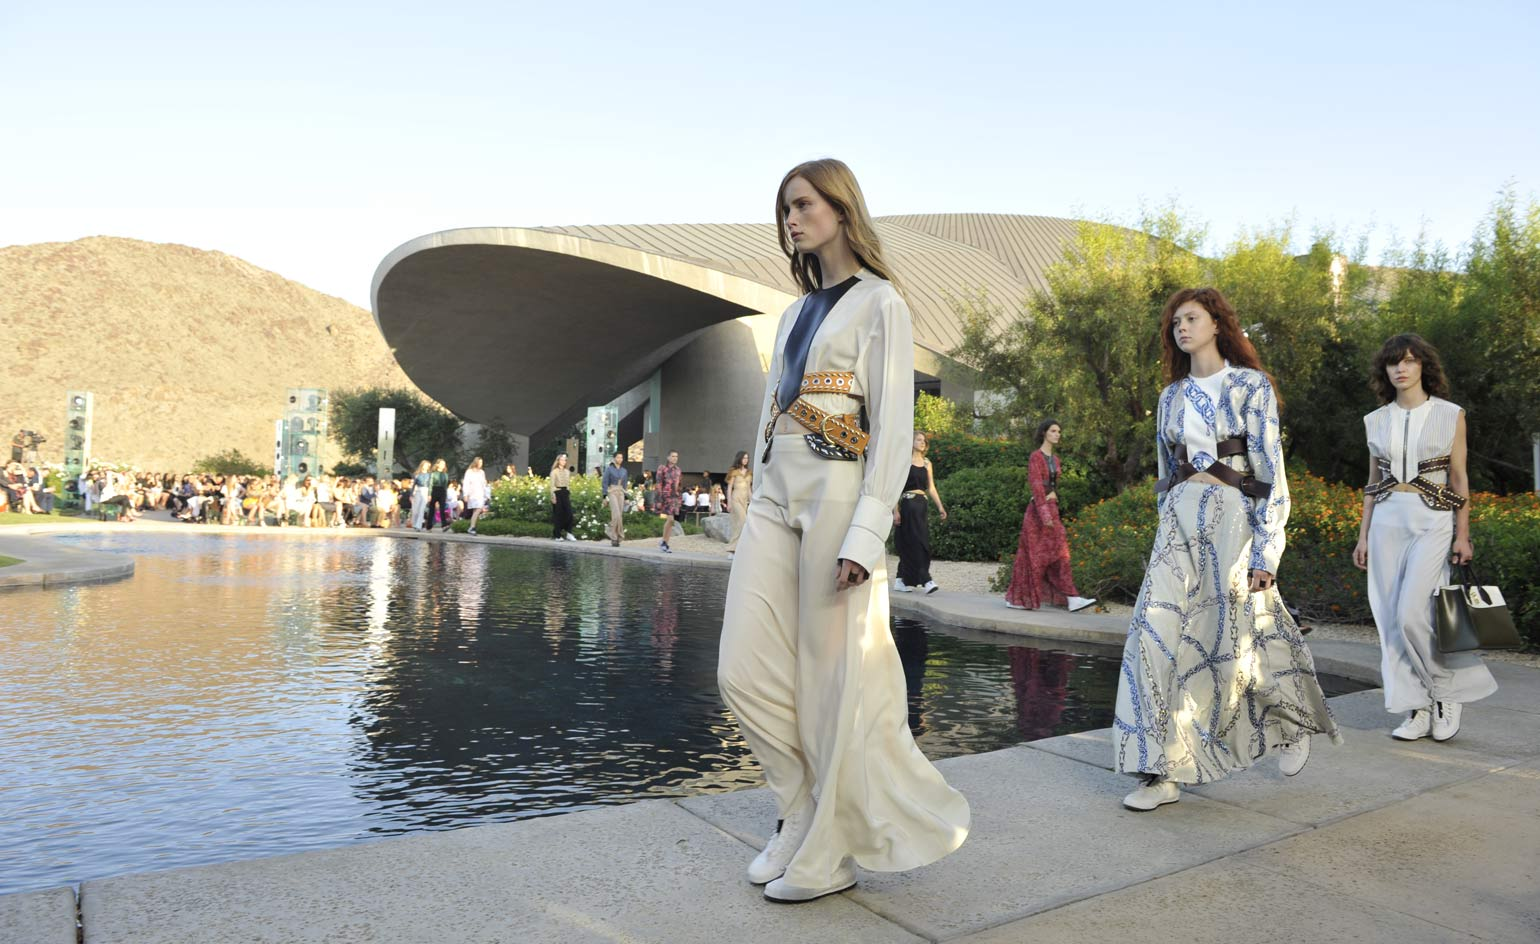 Louis Vuitton cruise 2016 Palm Springs, California - photos courtesy Louis Vuitton